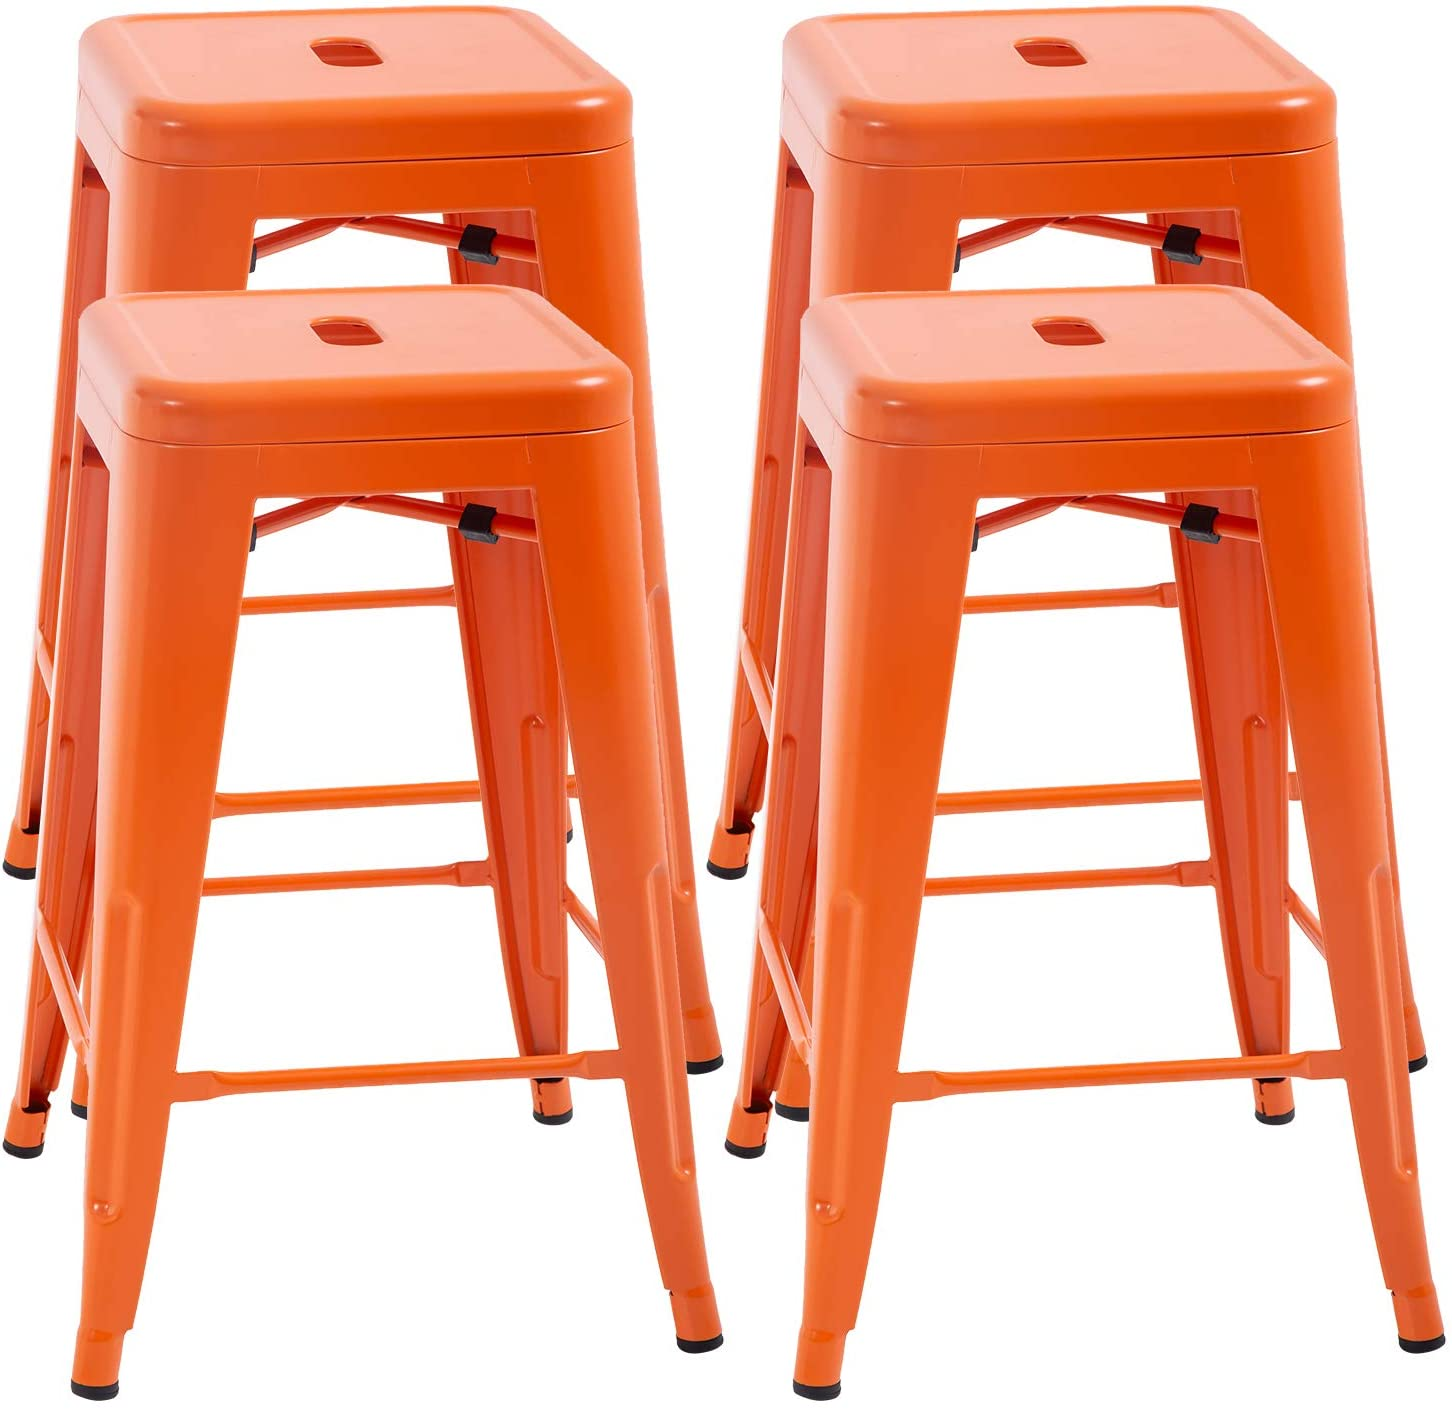 Counter Height Bar Stools Set Of 4 Metal Bar Stools Industrial Metal Stool Patio Furniture 24 Inches Kitchen Counter Stool Indoor//Outdoor Stool Moden Stackable Barstools Restaurant Dining Chairs